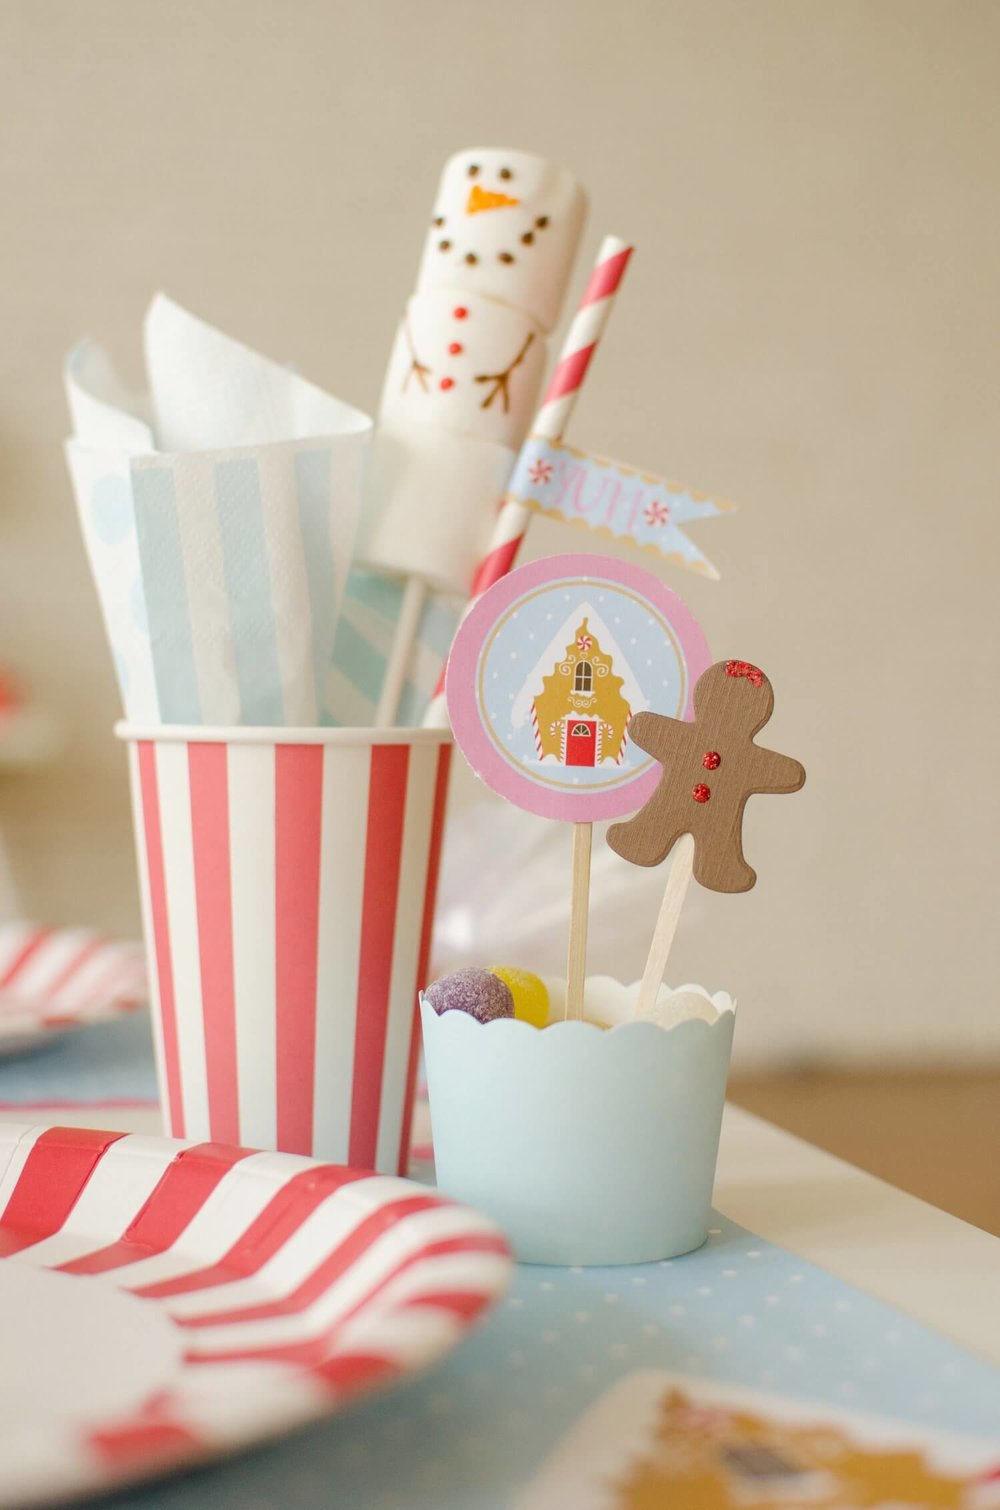 Christmas party supplies plus party printables for your next cookie decorating party